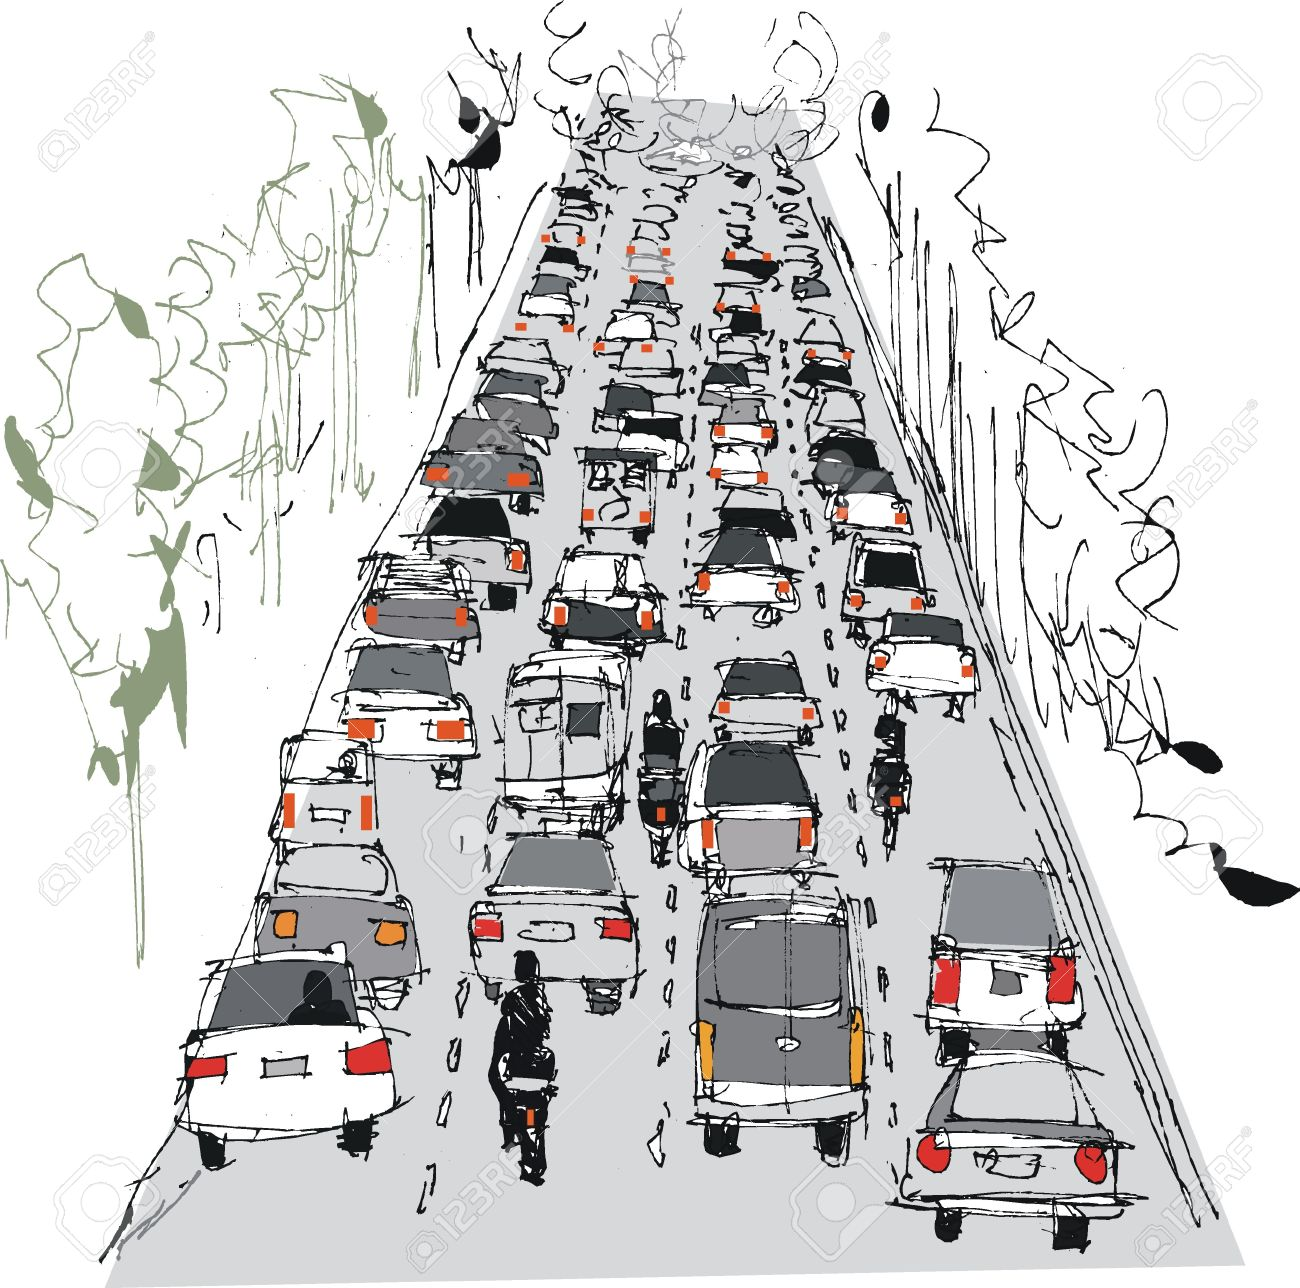 302 Highway Congestion Stock Vector Illustration And Royalty Free.